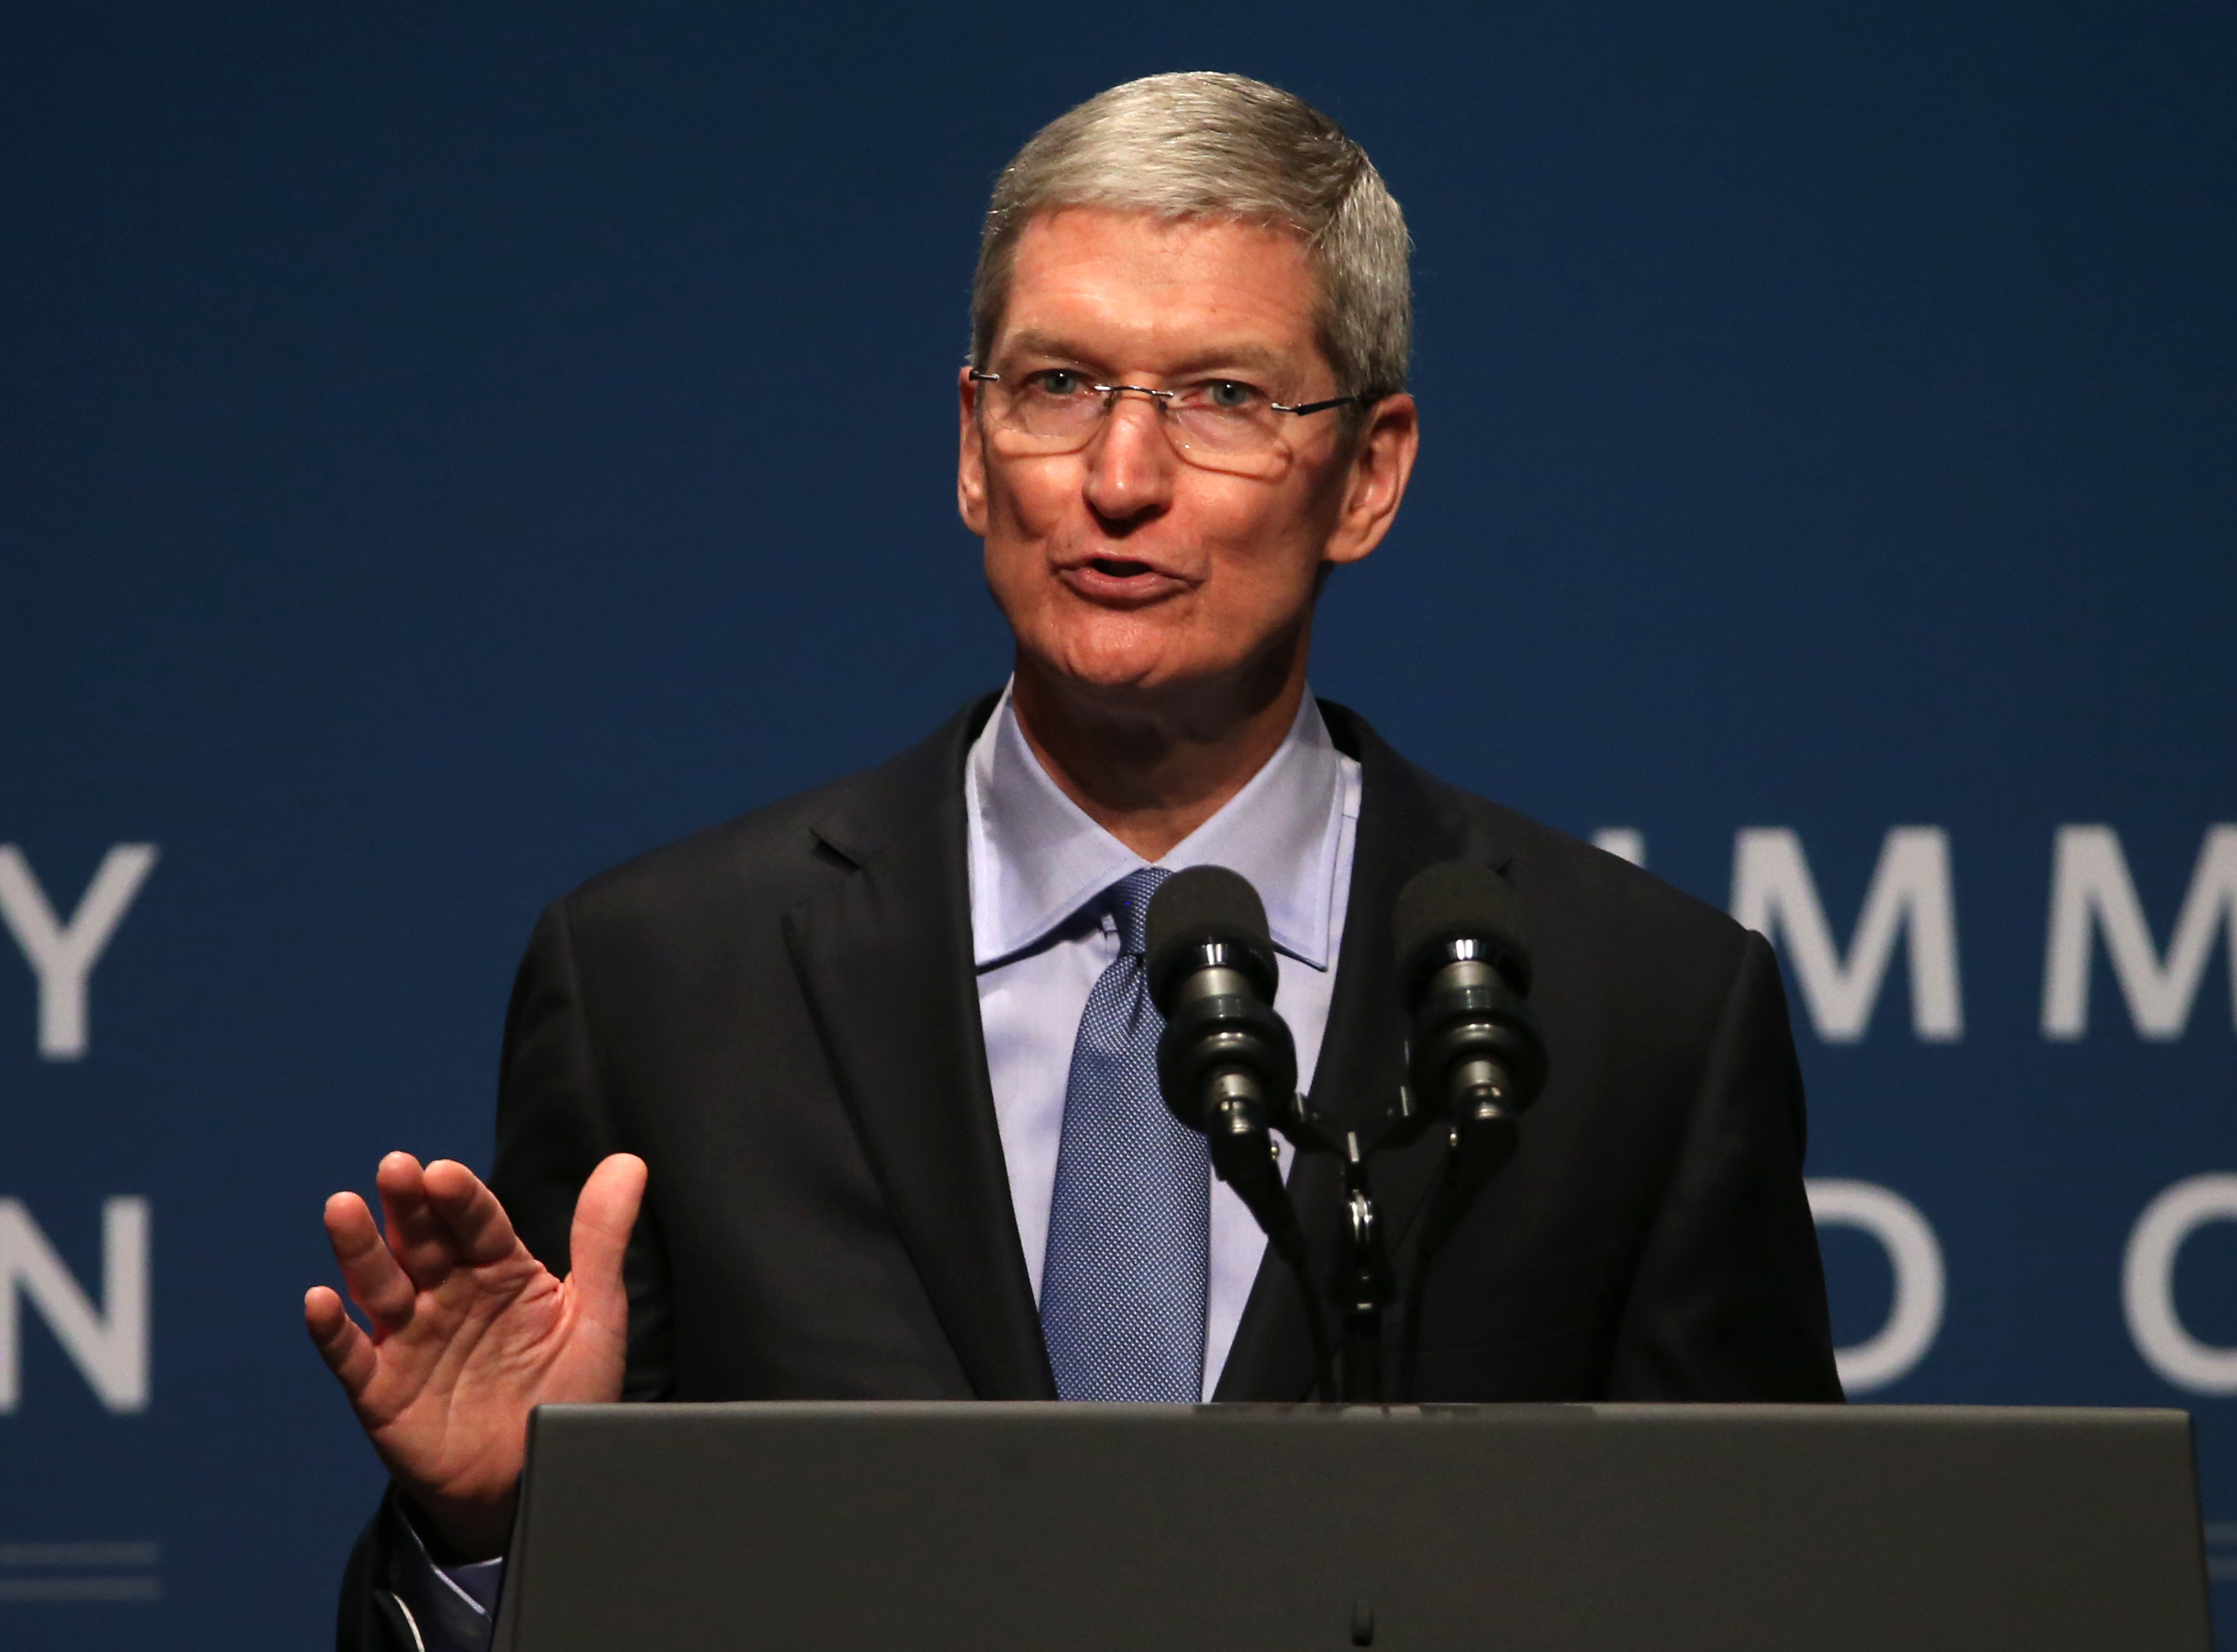 Apple CEO Tim Cook speaks during the White House Summit on Cybersecurity and Consumer Protection on February 13, 2015 in Stanford, California.